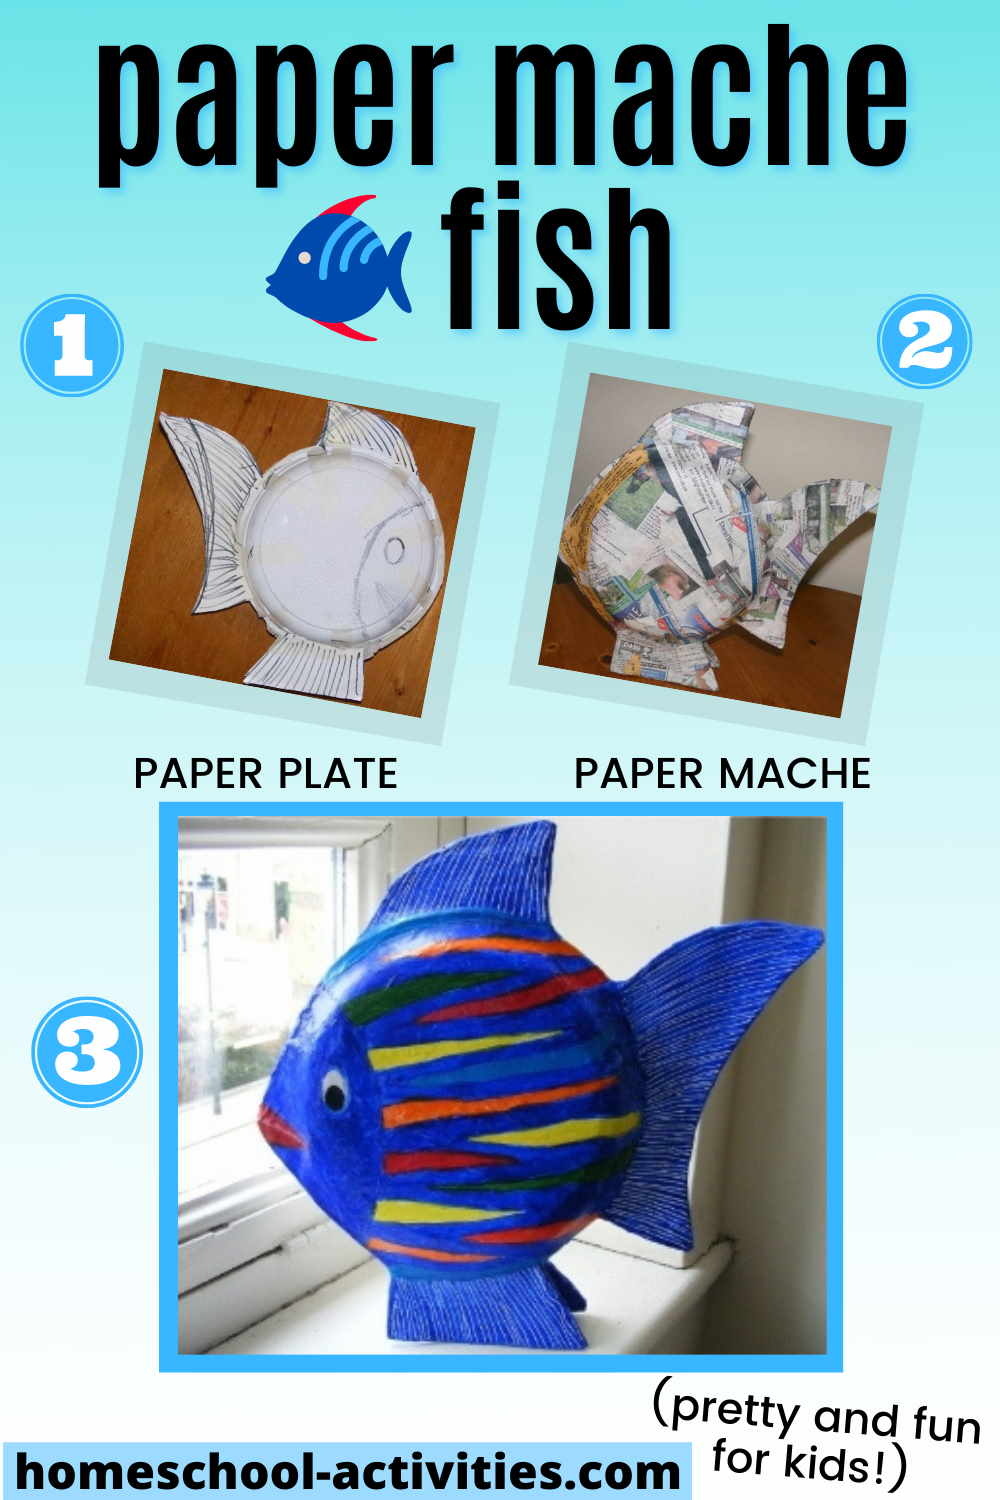 Paper mache crafts for kids with these lovely fish ornaments